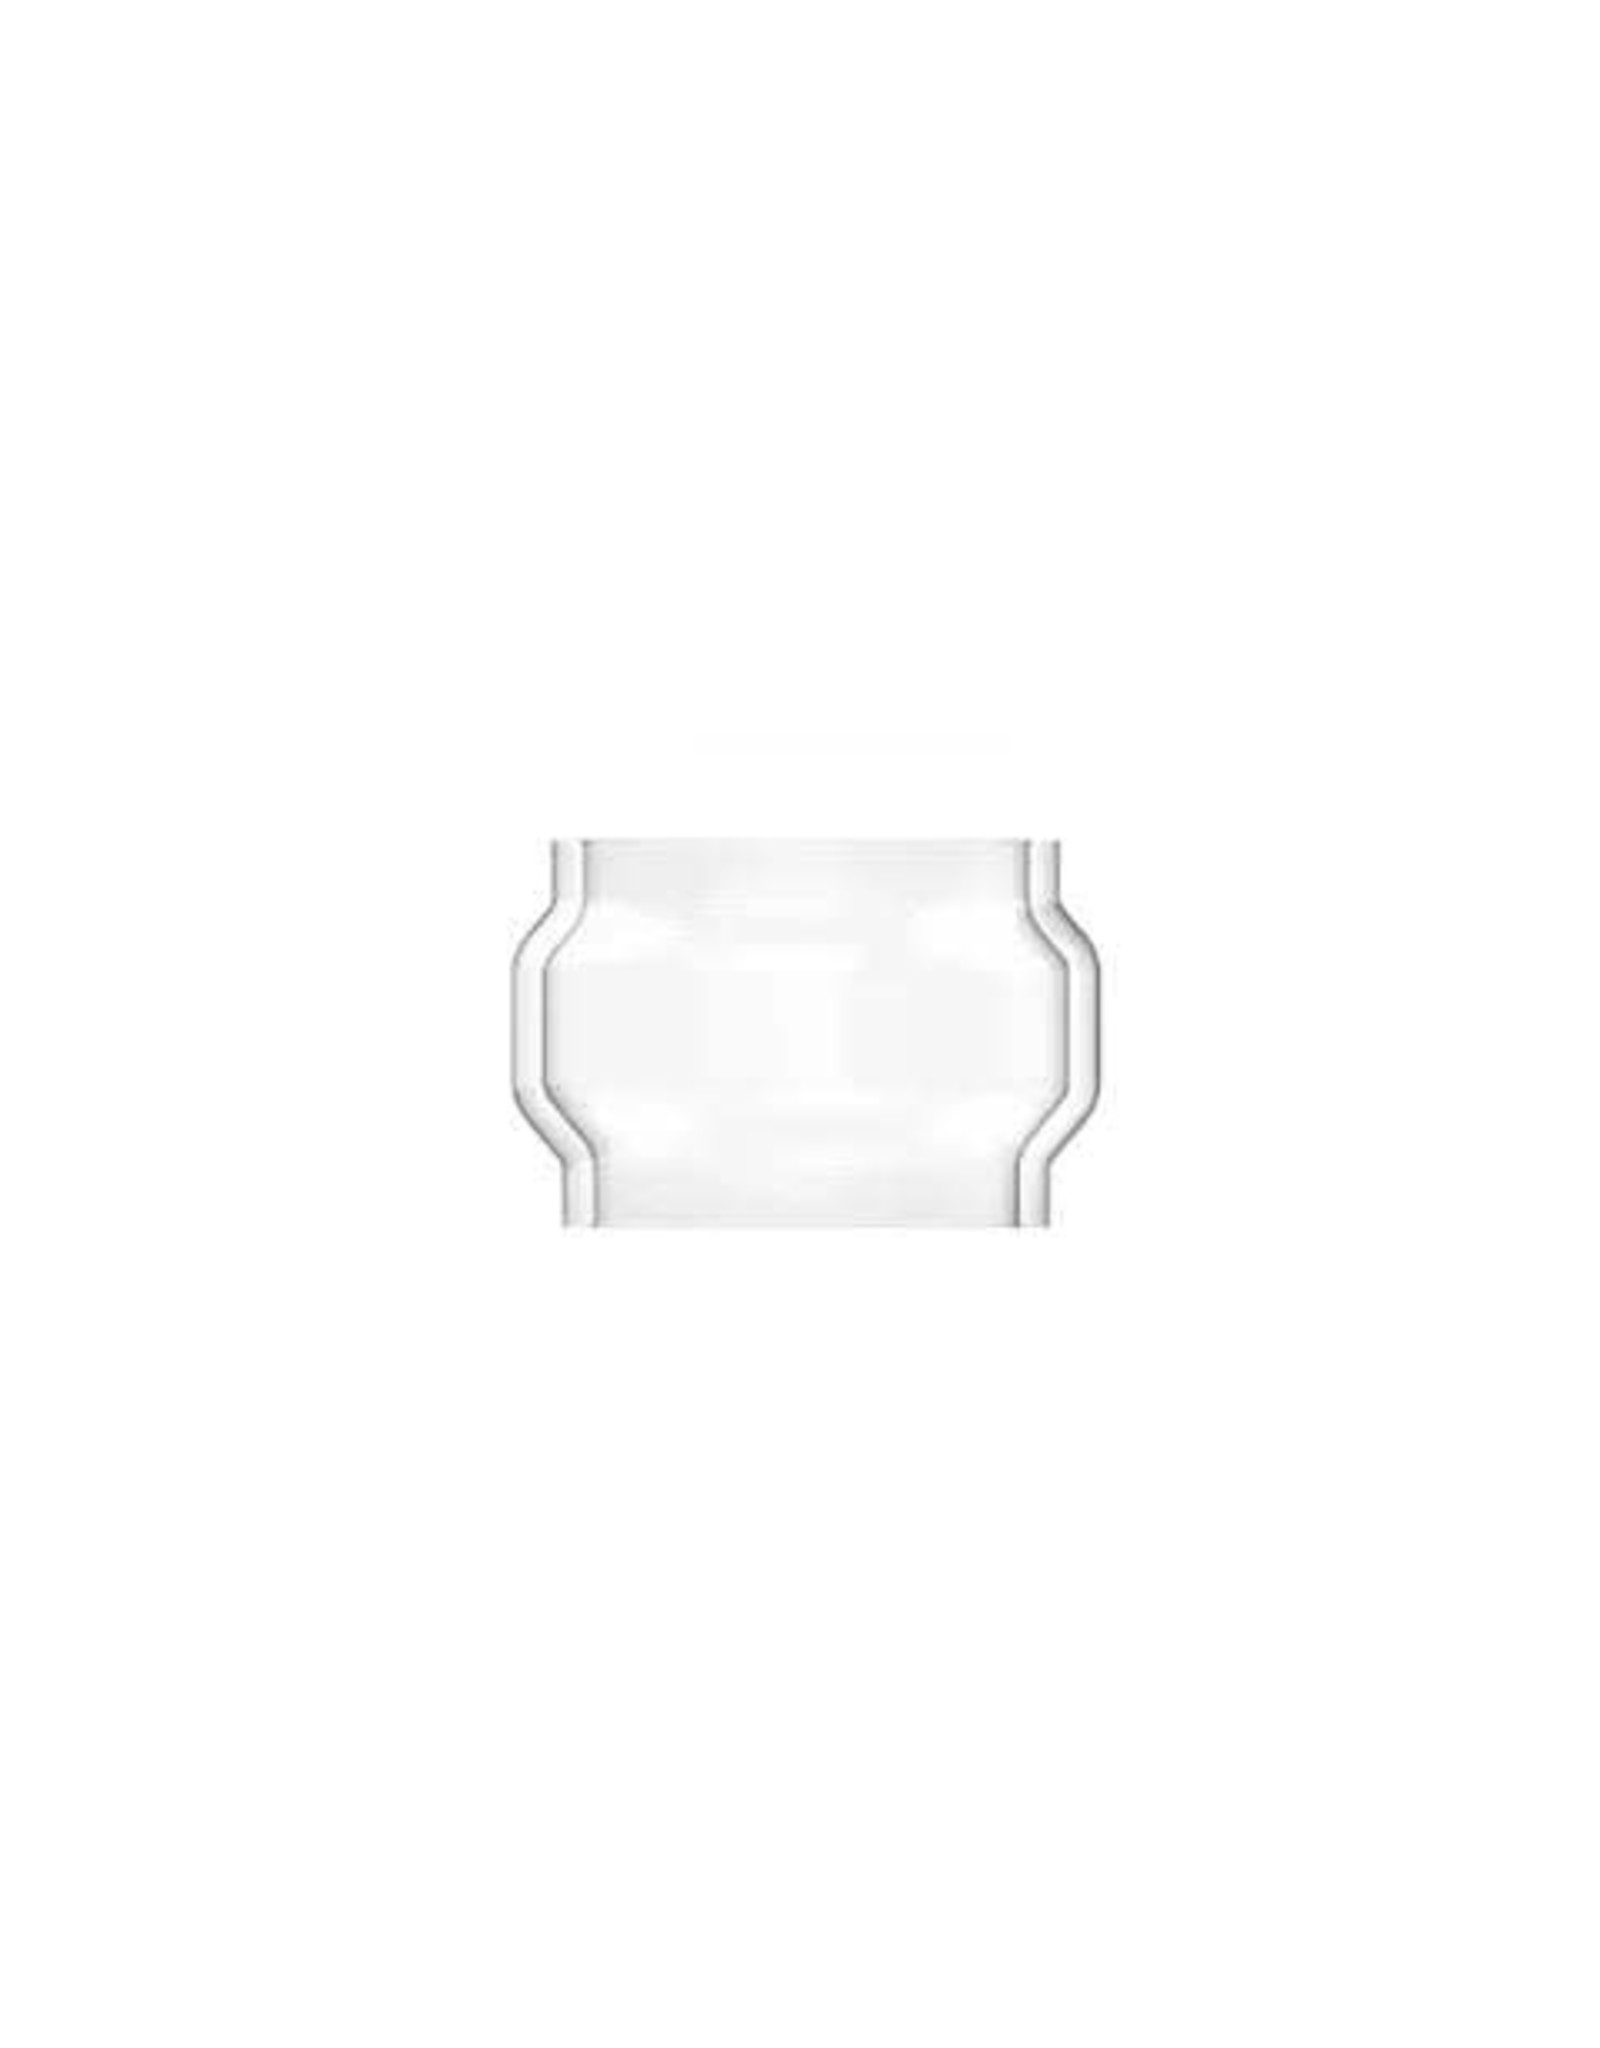 Uwell Uwell Crown 5 Replacement Glass (5mL)